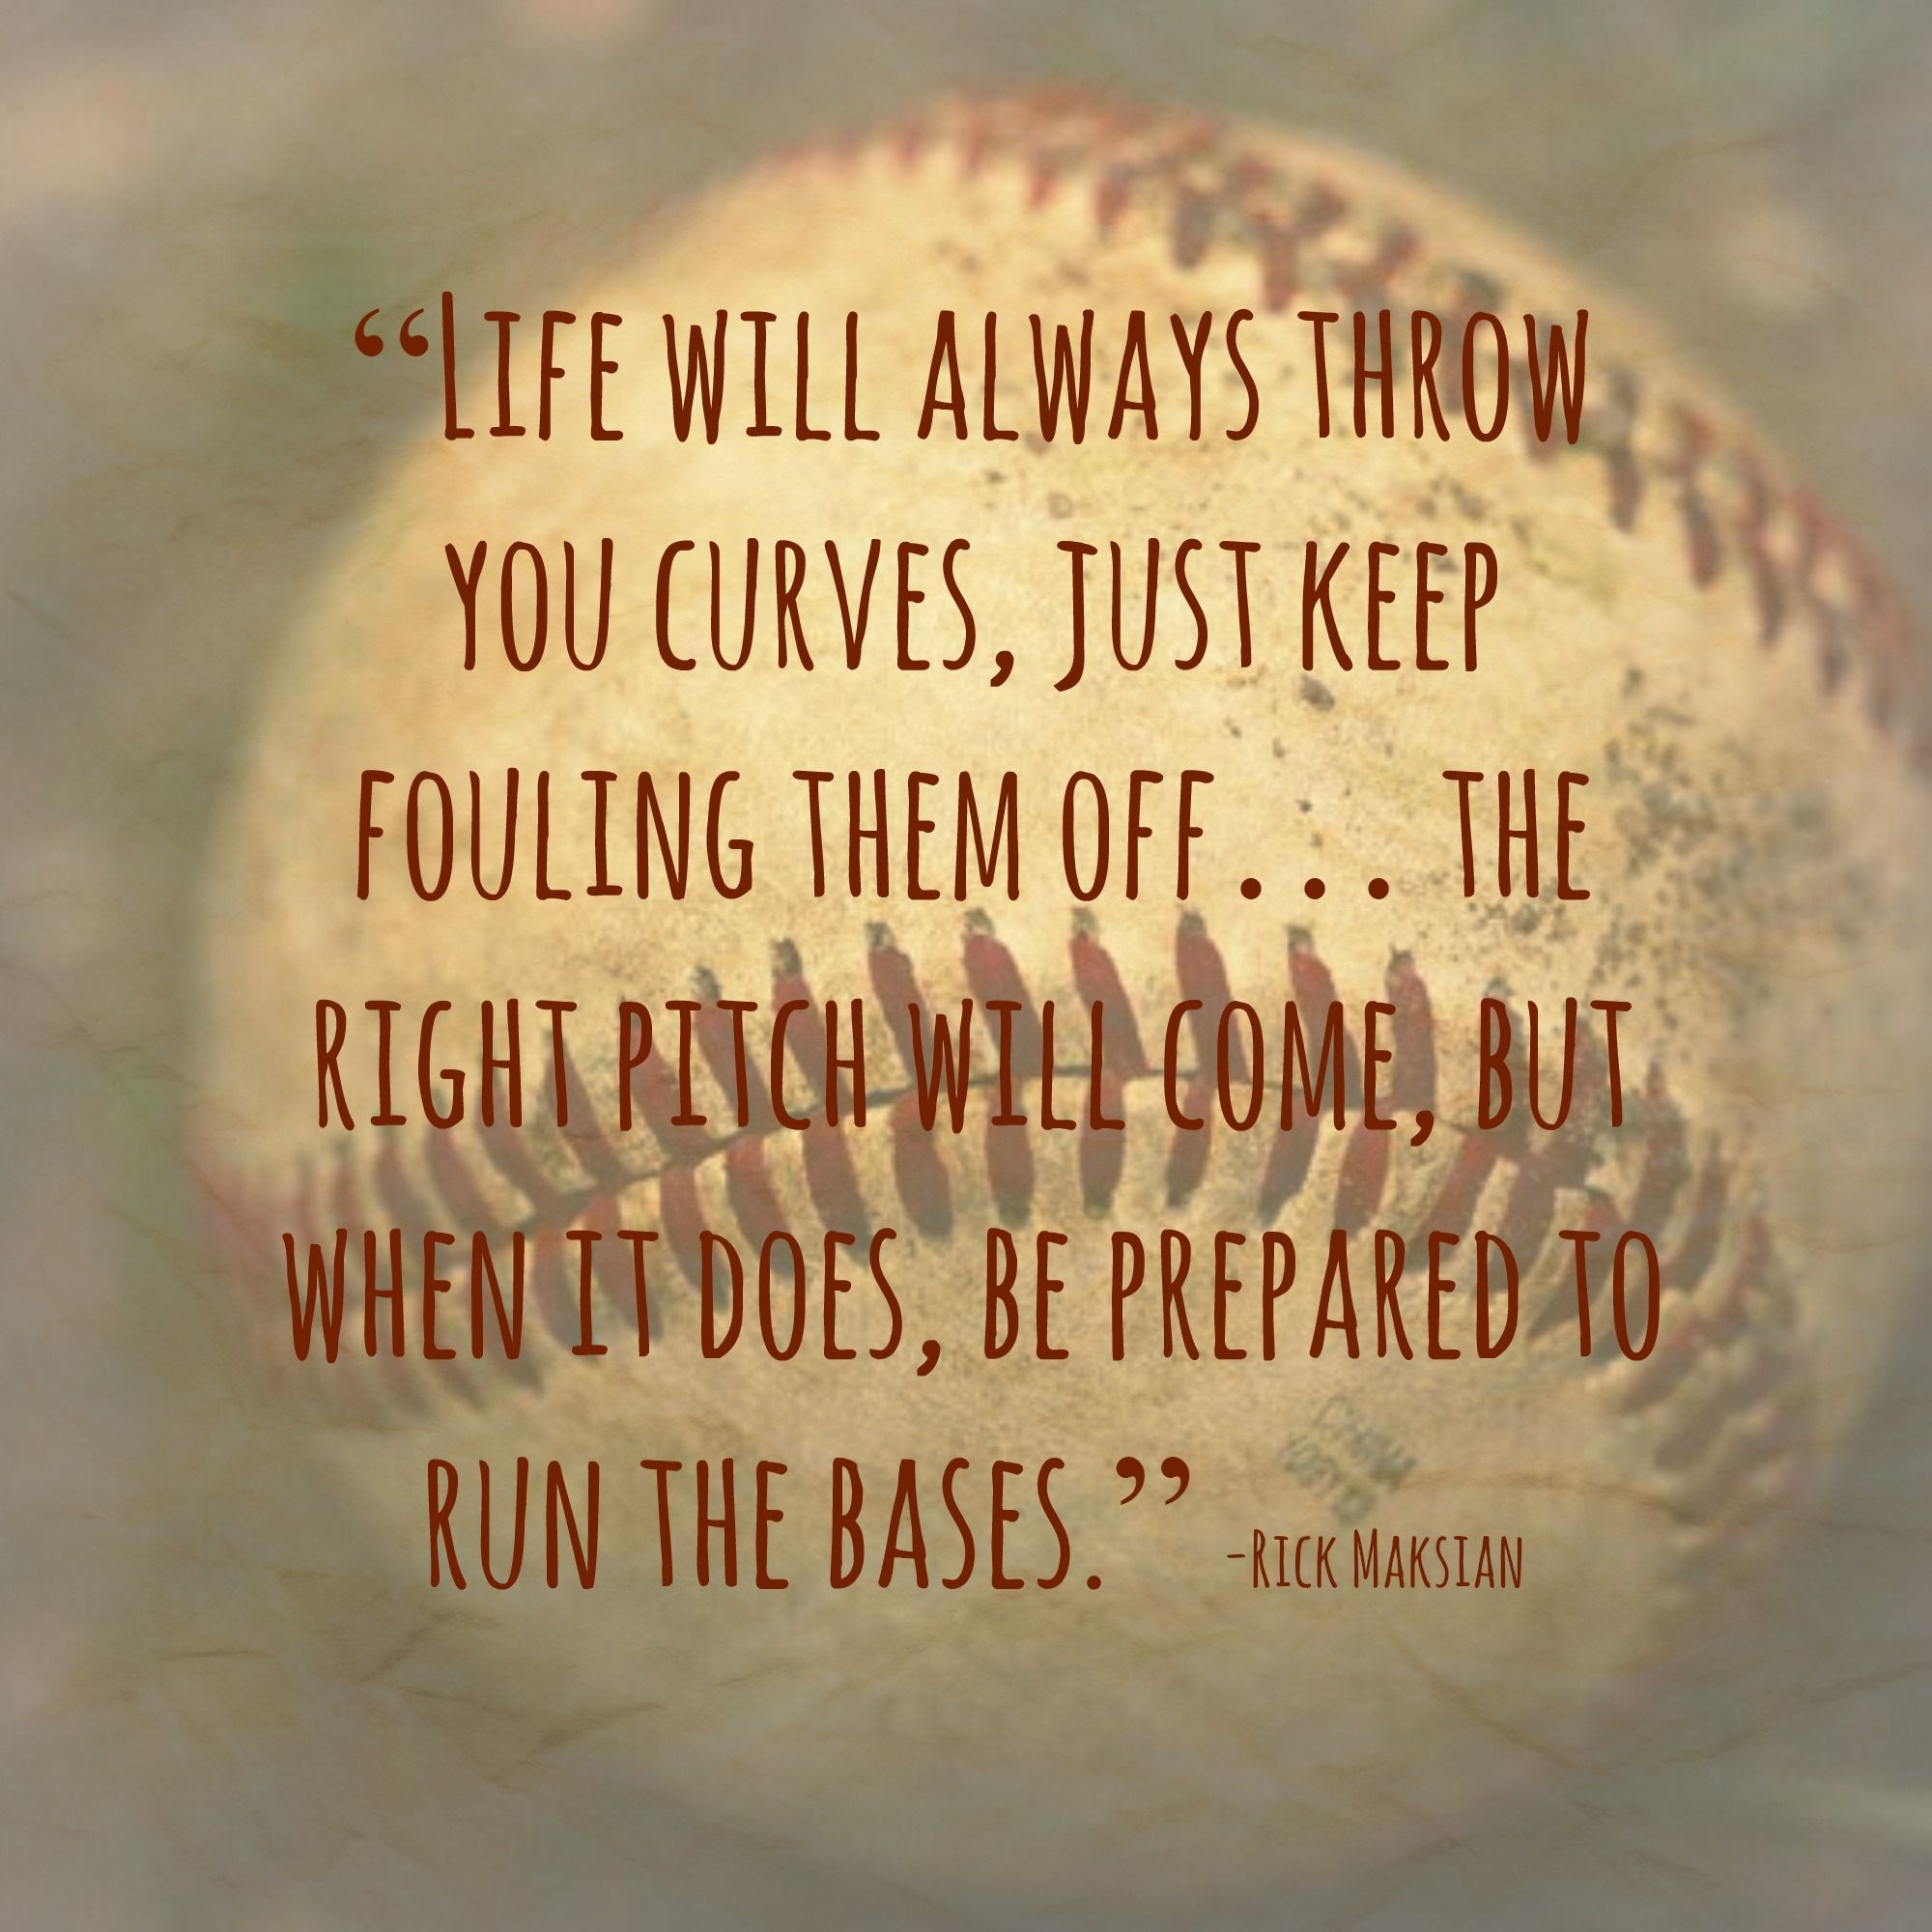 Softball Life Quotes Time To Become Powerfull  Motivation  Pinterest  Facebook Cover